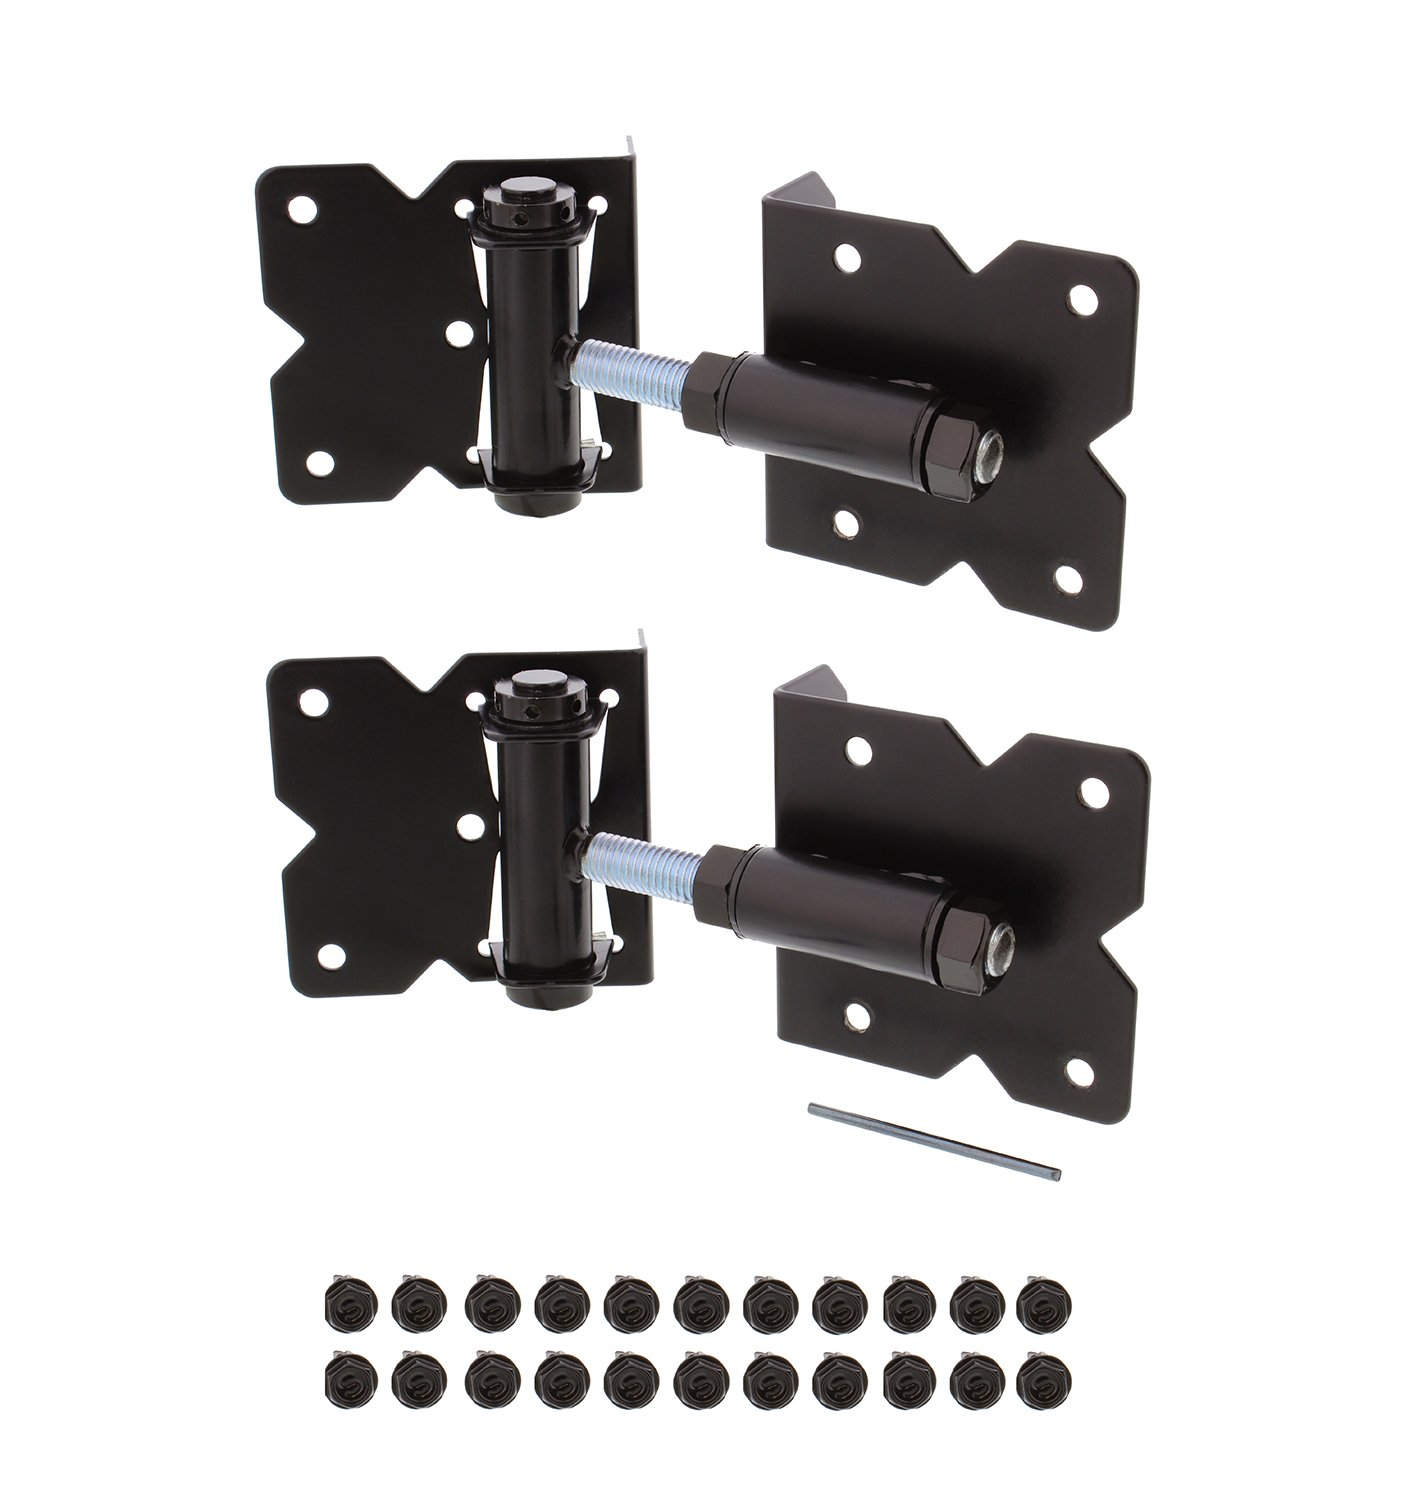 7Penn Self-Closing Black Gate Hinge 2-Pack with Installation Screws and Swing Adjuster Tool – Outdoor Vinyl/Wood Fence